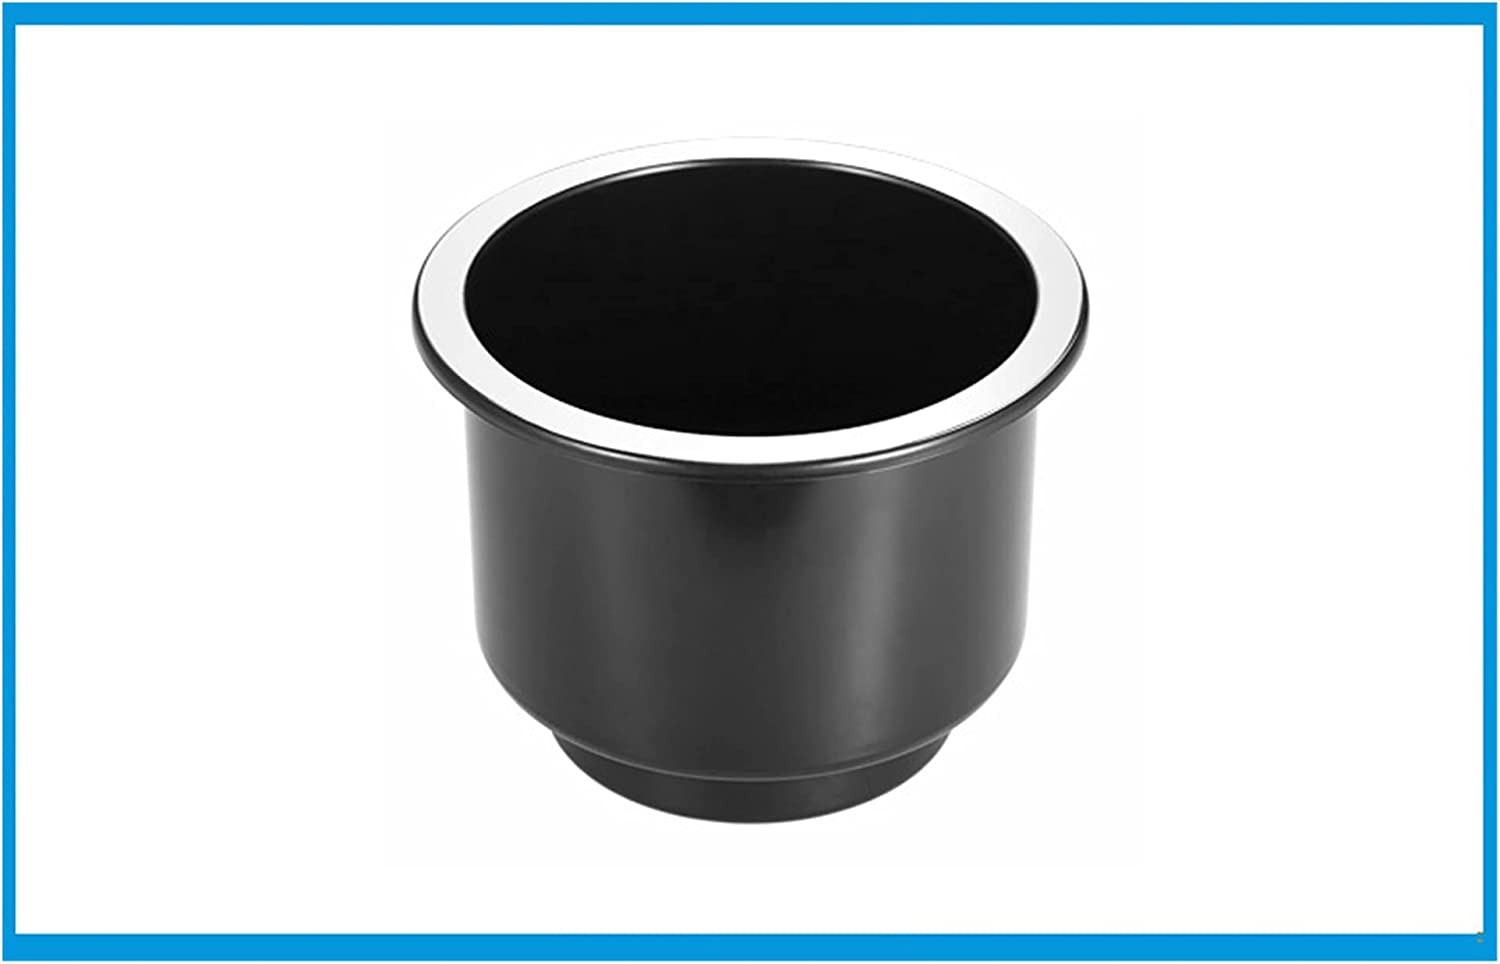 ZEFS--ESD A surprise price is Classic realized Boat Kit Nylon UV Stabilized Cup Holder Mari for Drink